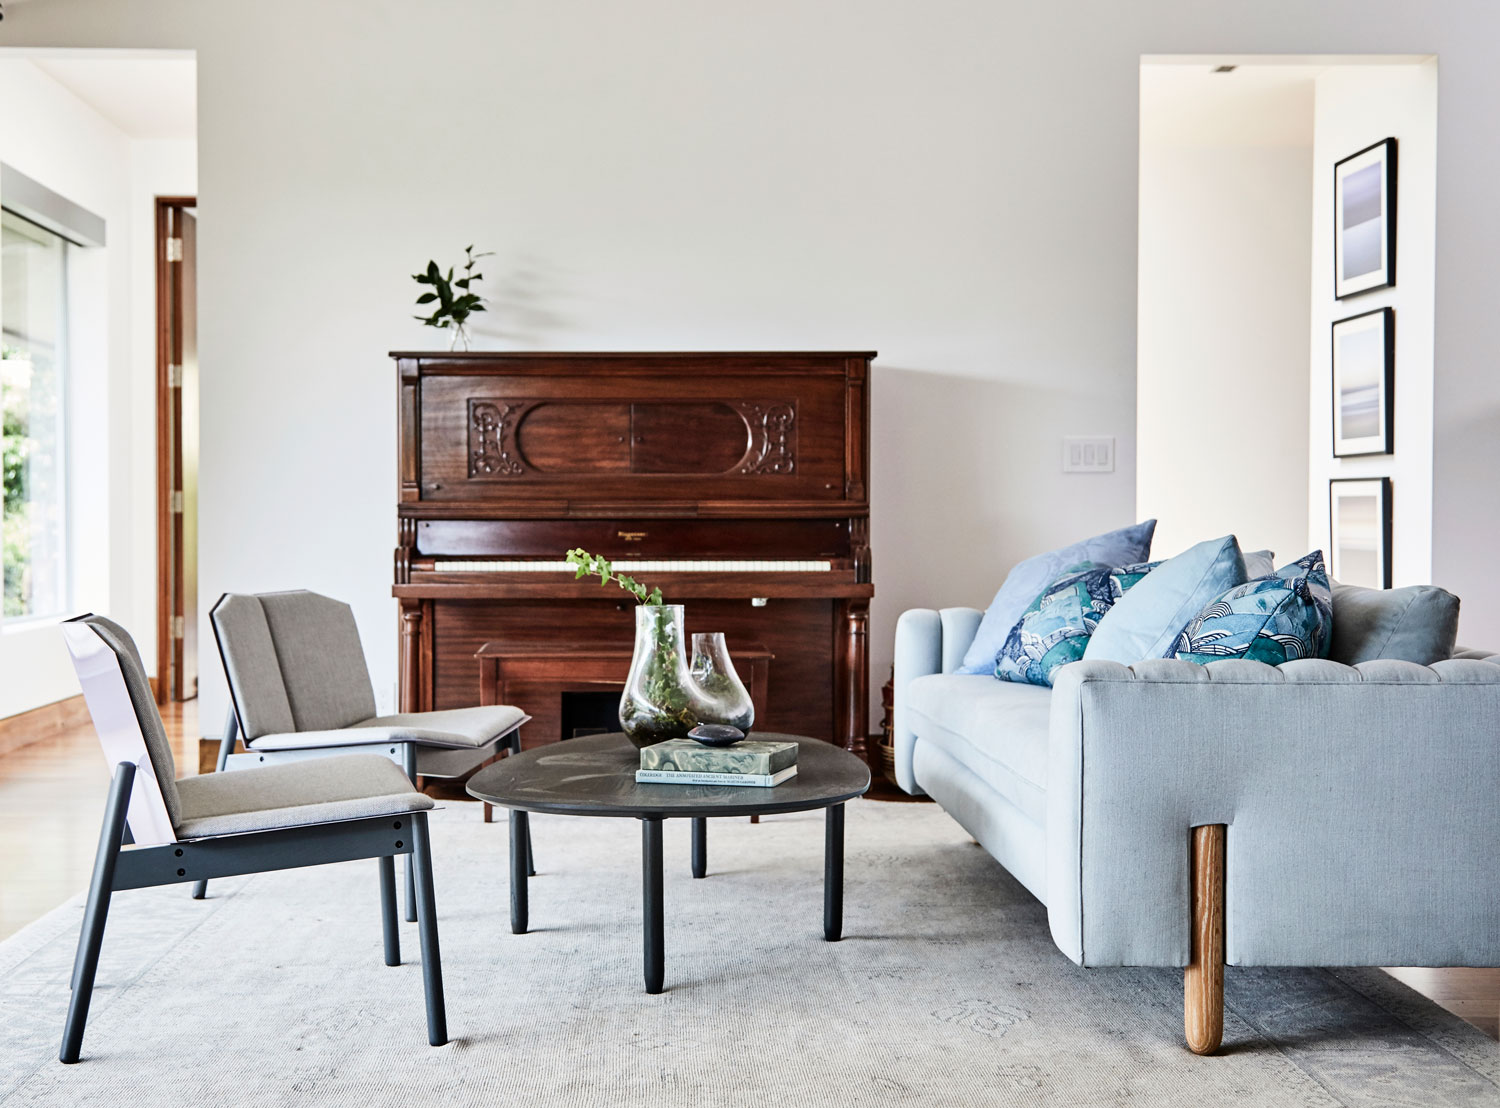 Pairing our client's antique player piano with modern pieces from Lawson Fenning and Blu Dot was one of the ways we integrated their family history with the contemporary style of their new home.